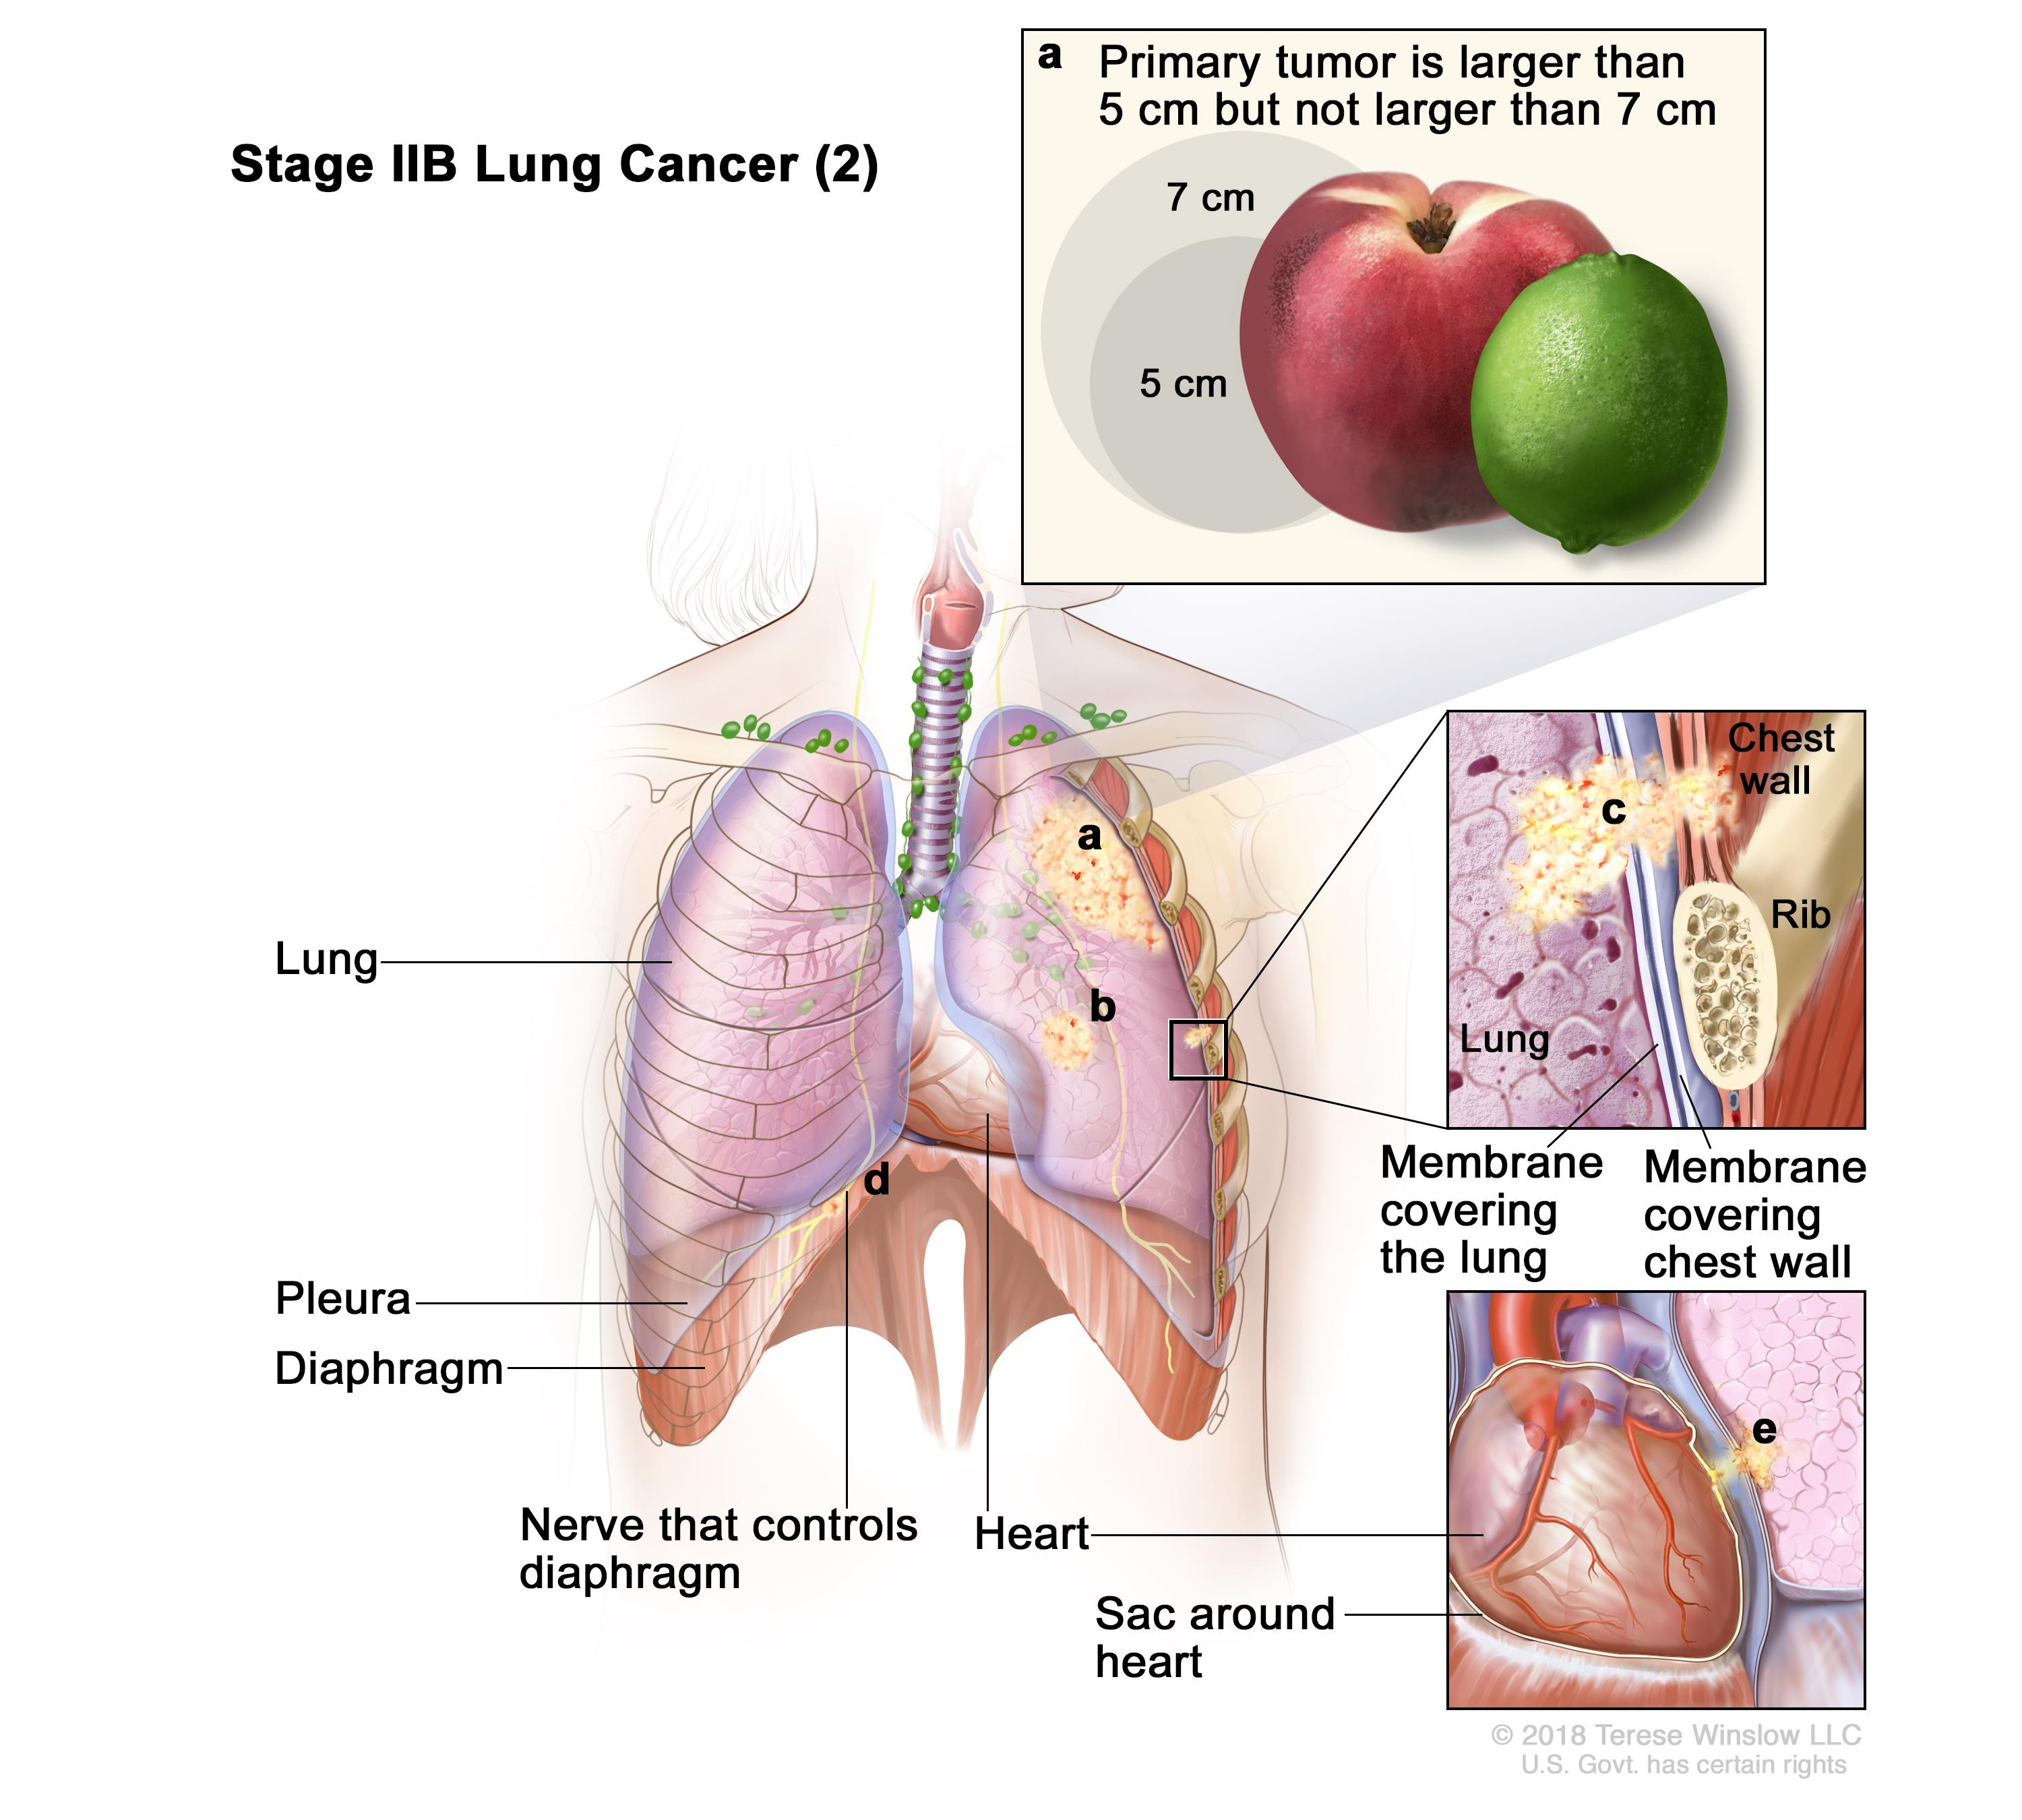 Stage IIB lung cancer (2); drawing shows (a) a primary tumor (larger than 5 cm but not larger than 7 cm) in the left lung (top inset) and (b) a separate tumor in the same lobe of the lung as the primary tumor. Also shown is cancer that has spread to (c) the chest wall and the membranes covering the lung and chest wall (middle inset); (d) the nerve that controls the diaphragm; and (e) the sac around the heart (bottom inset). The pleura, diaphragm, heart, and a rib (middle inset) are also shown.